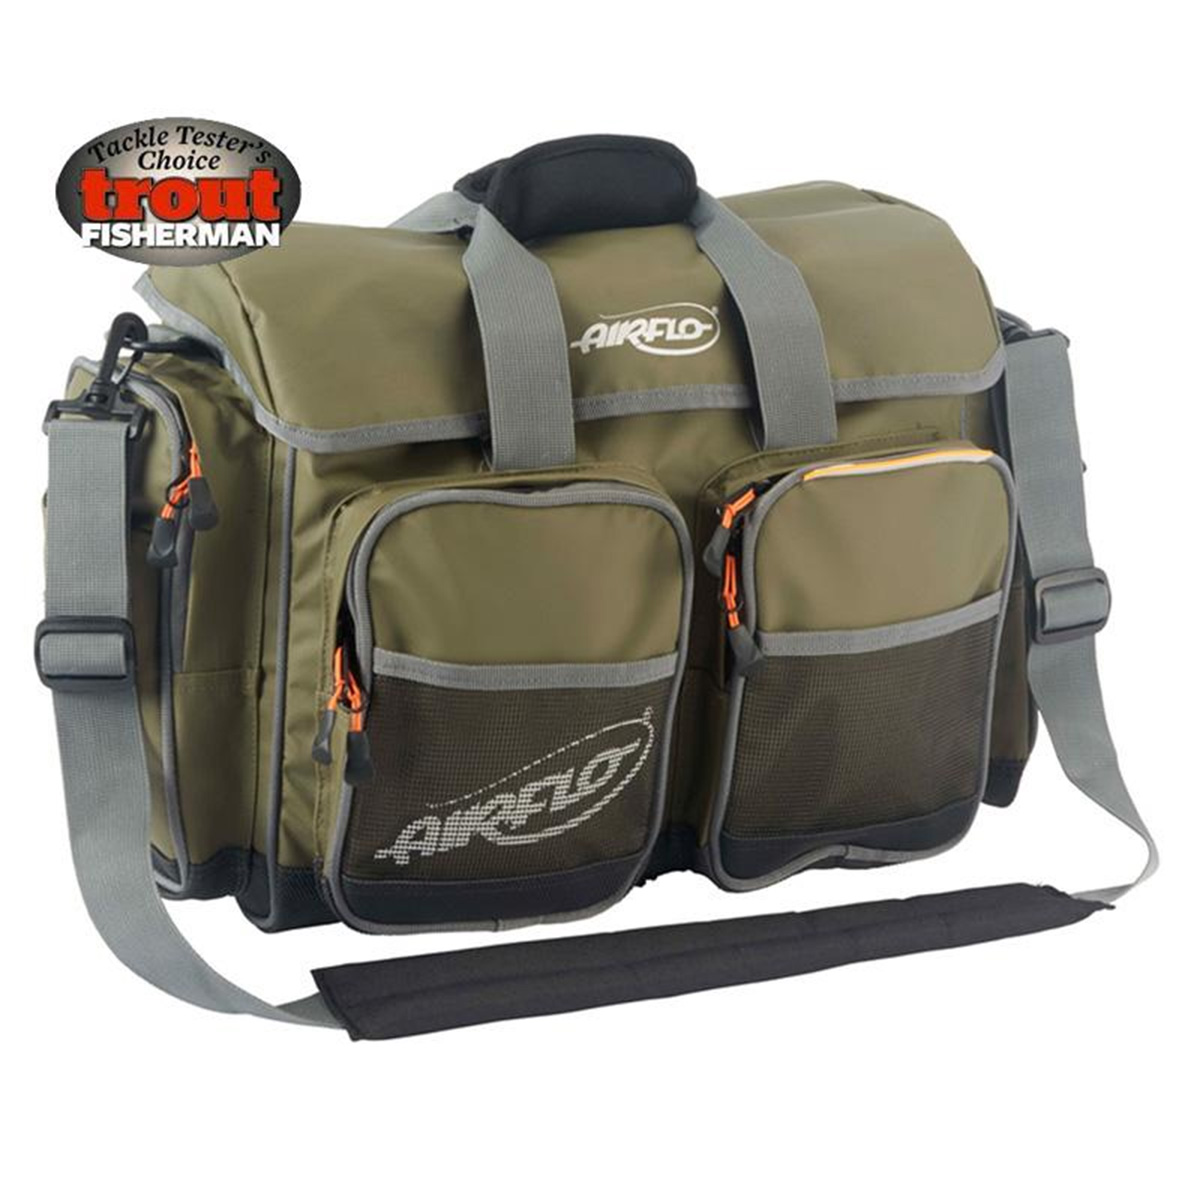 Airflo fly dri carryall med 20 l fishing bags for Fly fishing luggage